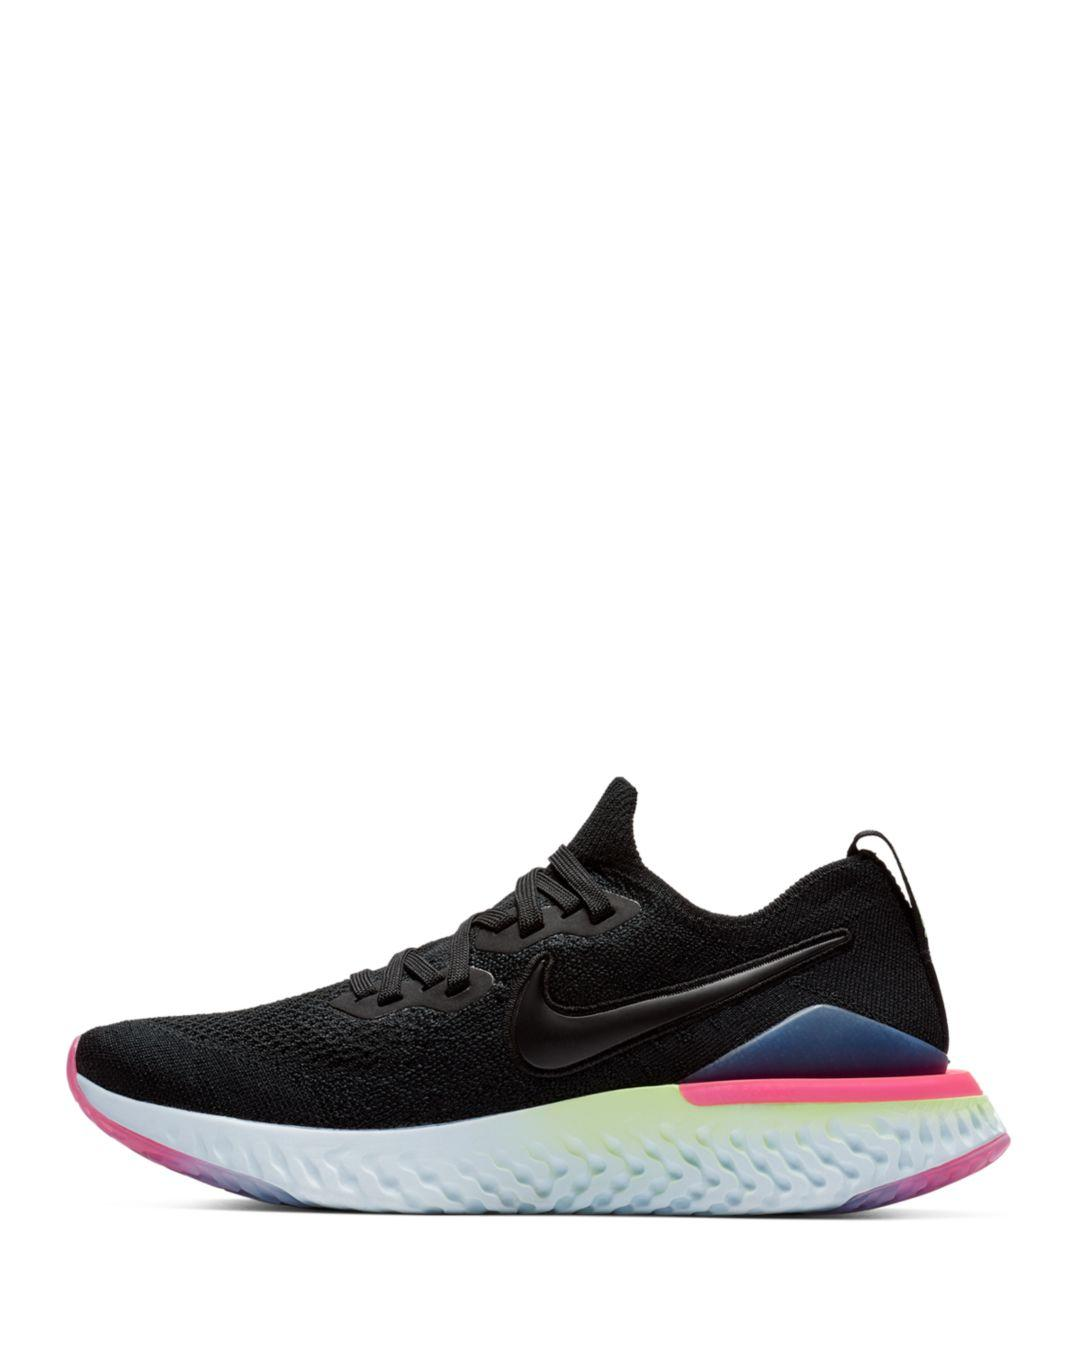 030493bb20f Lyst - Nike Women s Epic React Flyknit 2 Low-top Sneakers in Black